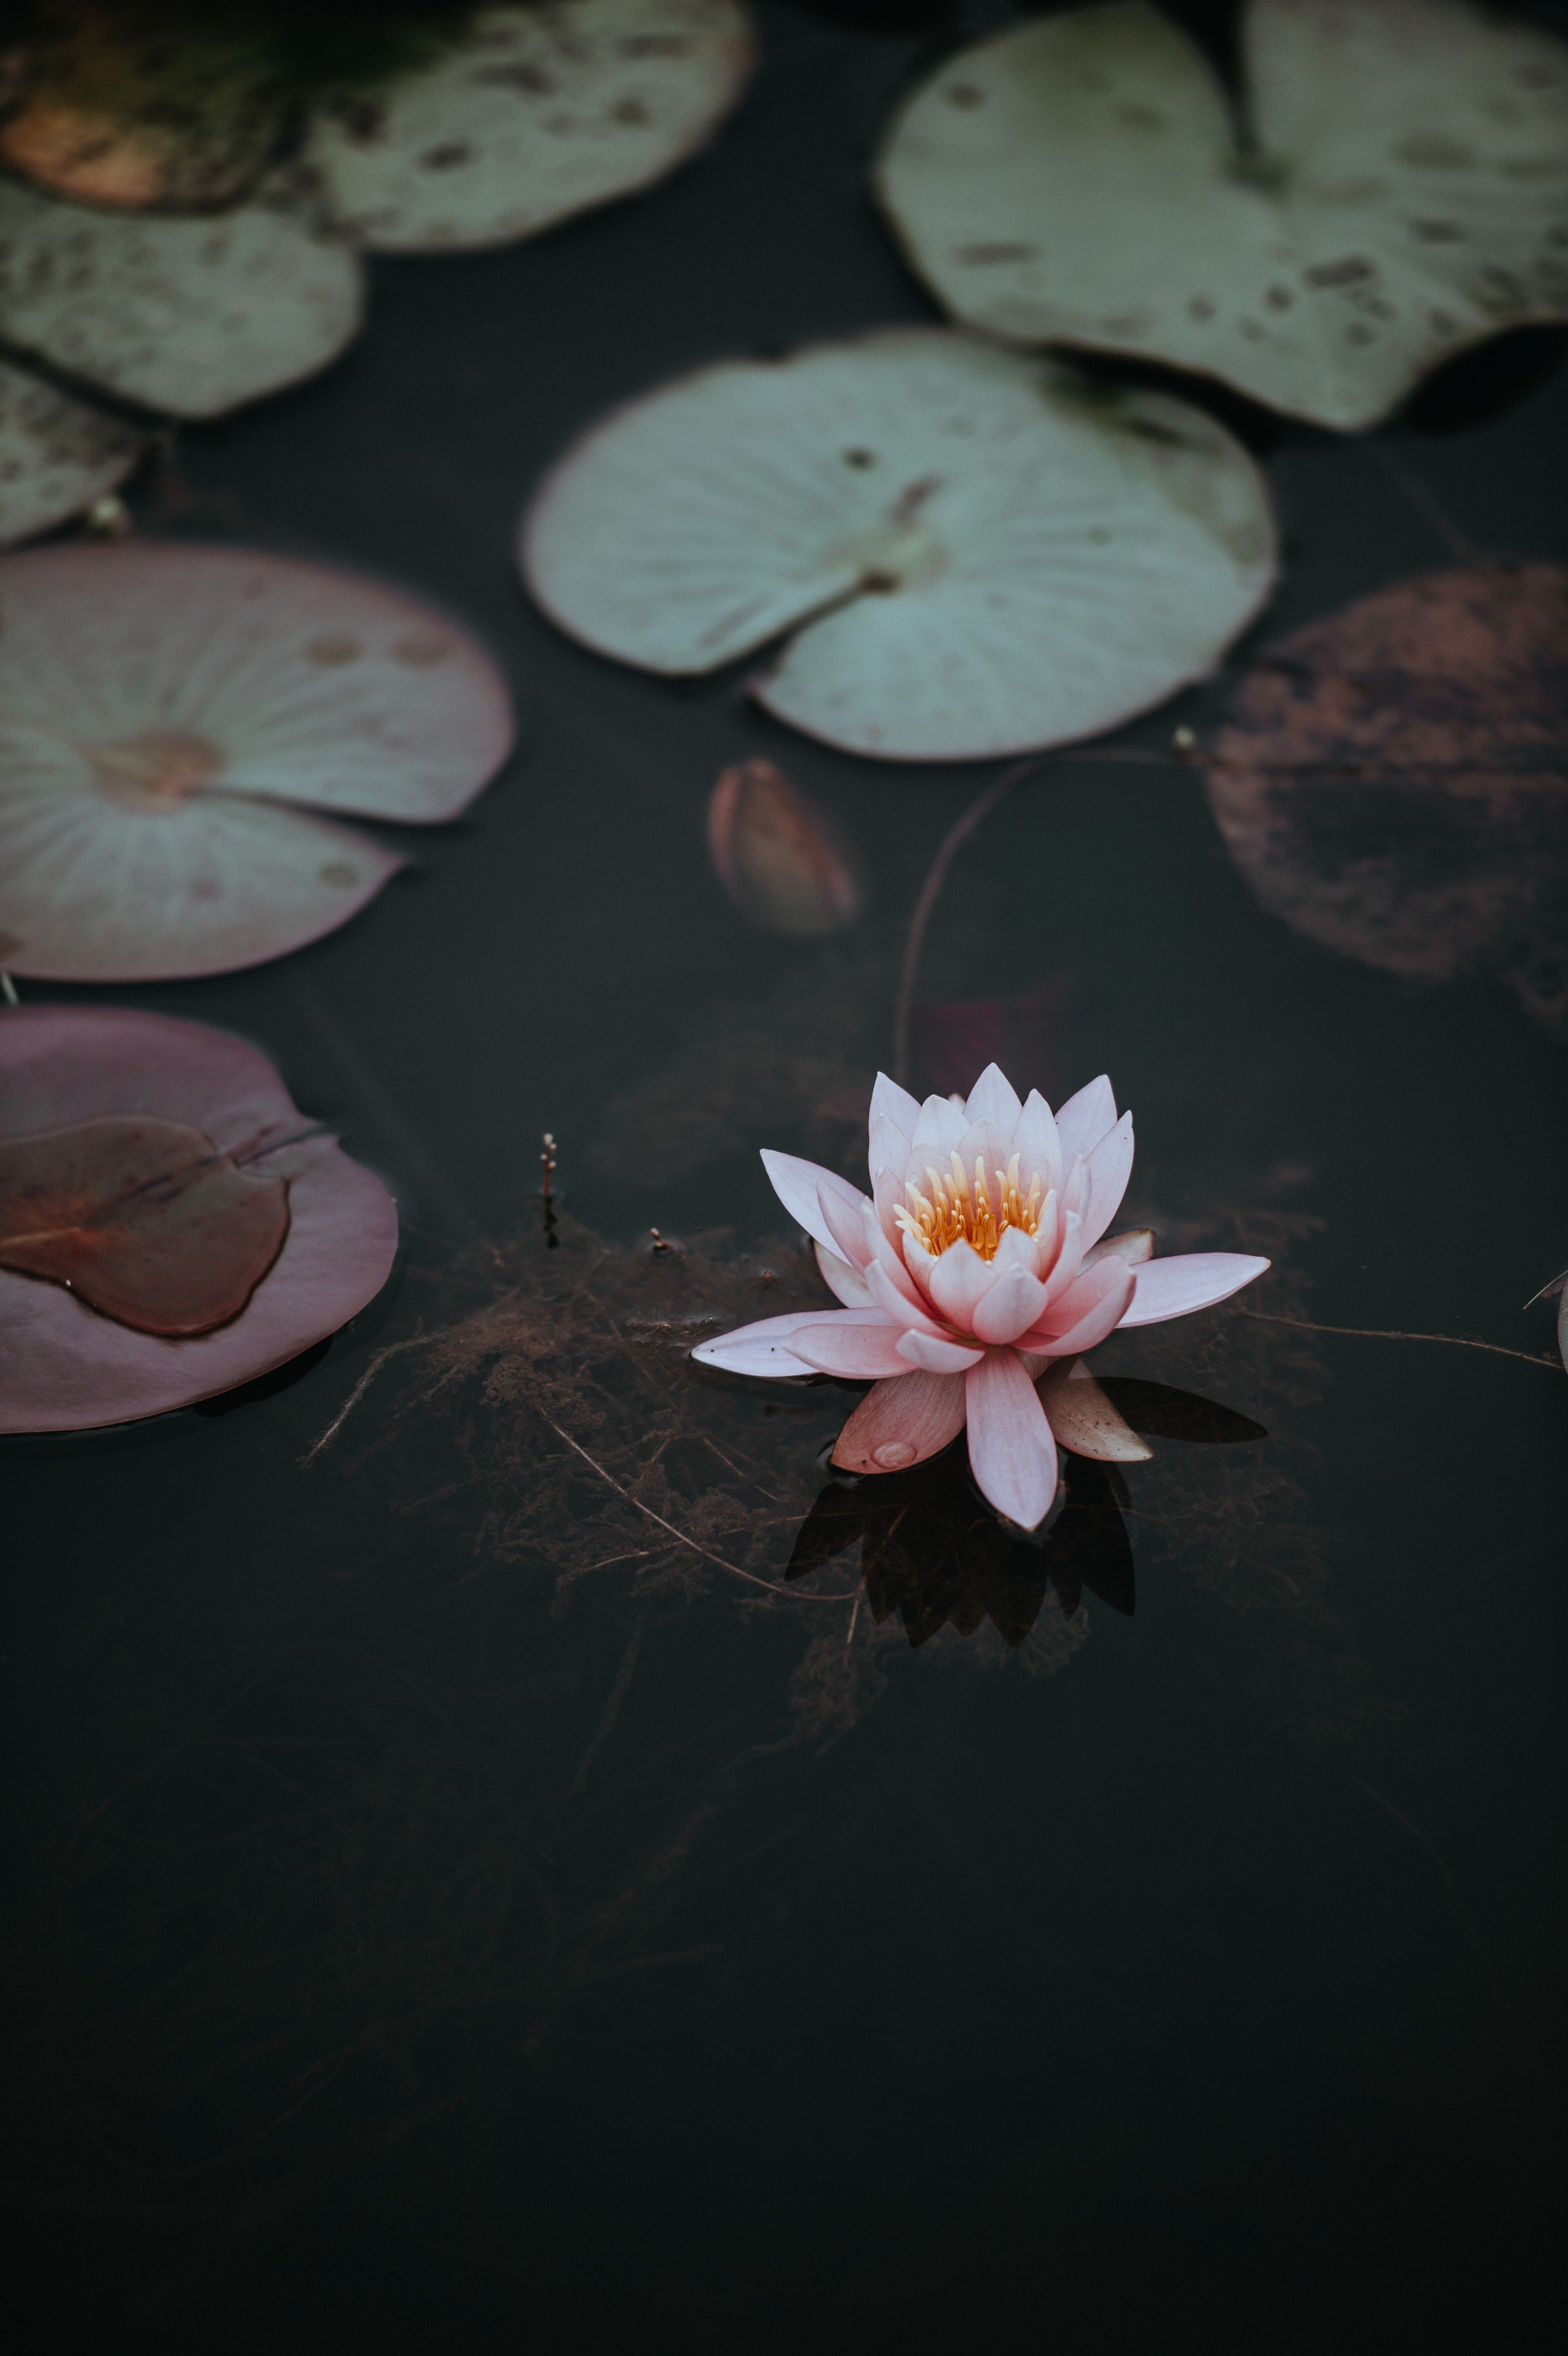 A pink water lily next to lily pads on the dark surface of